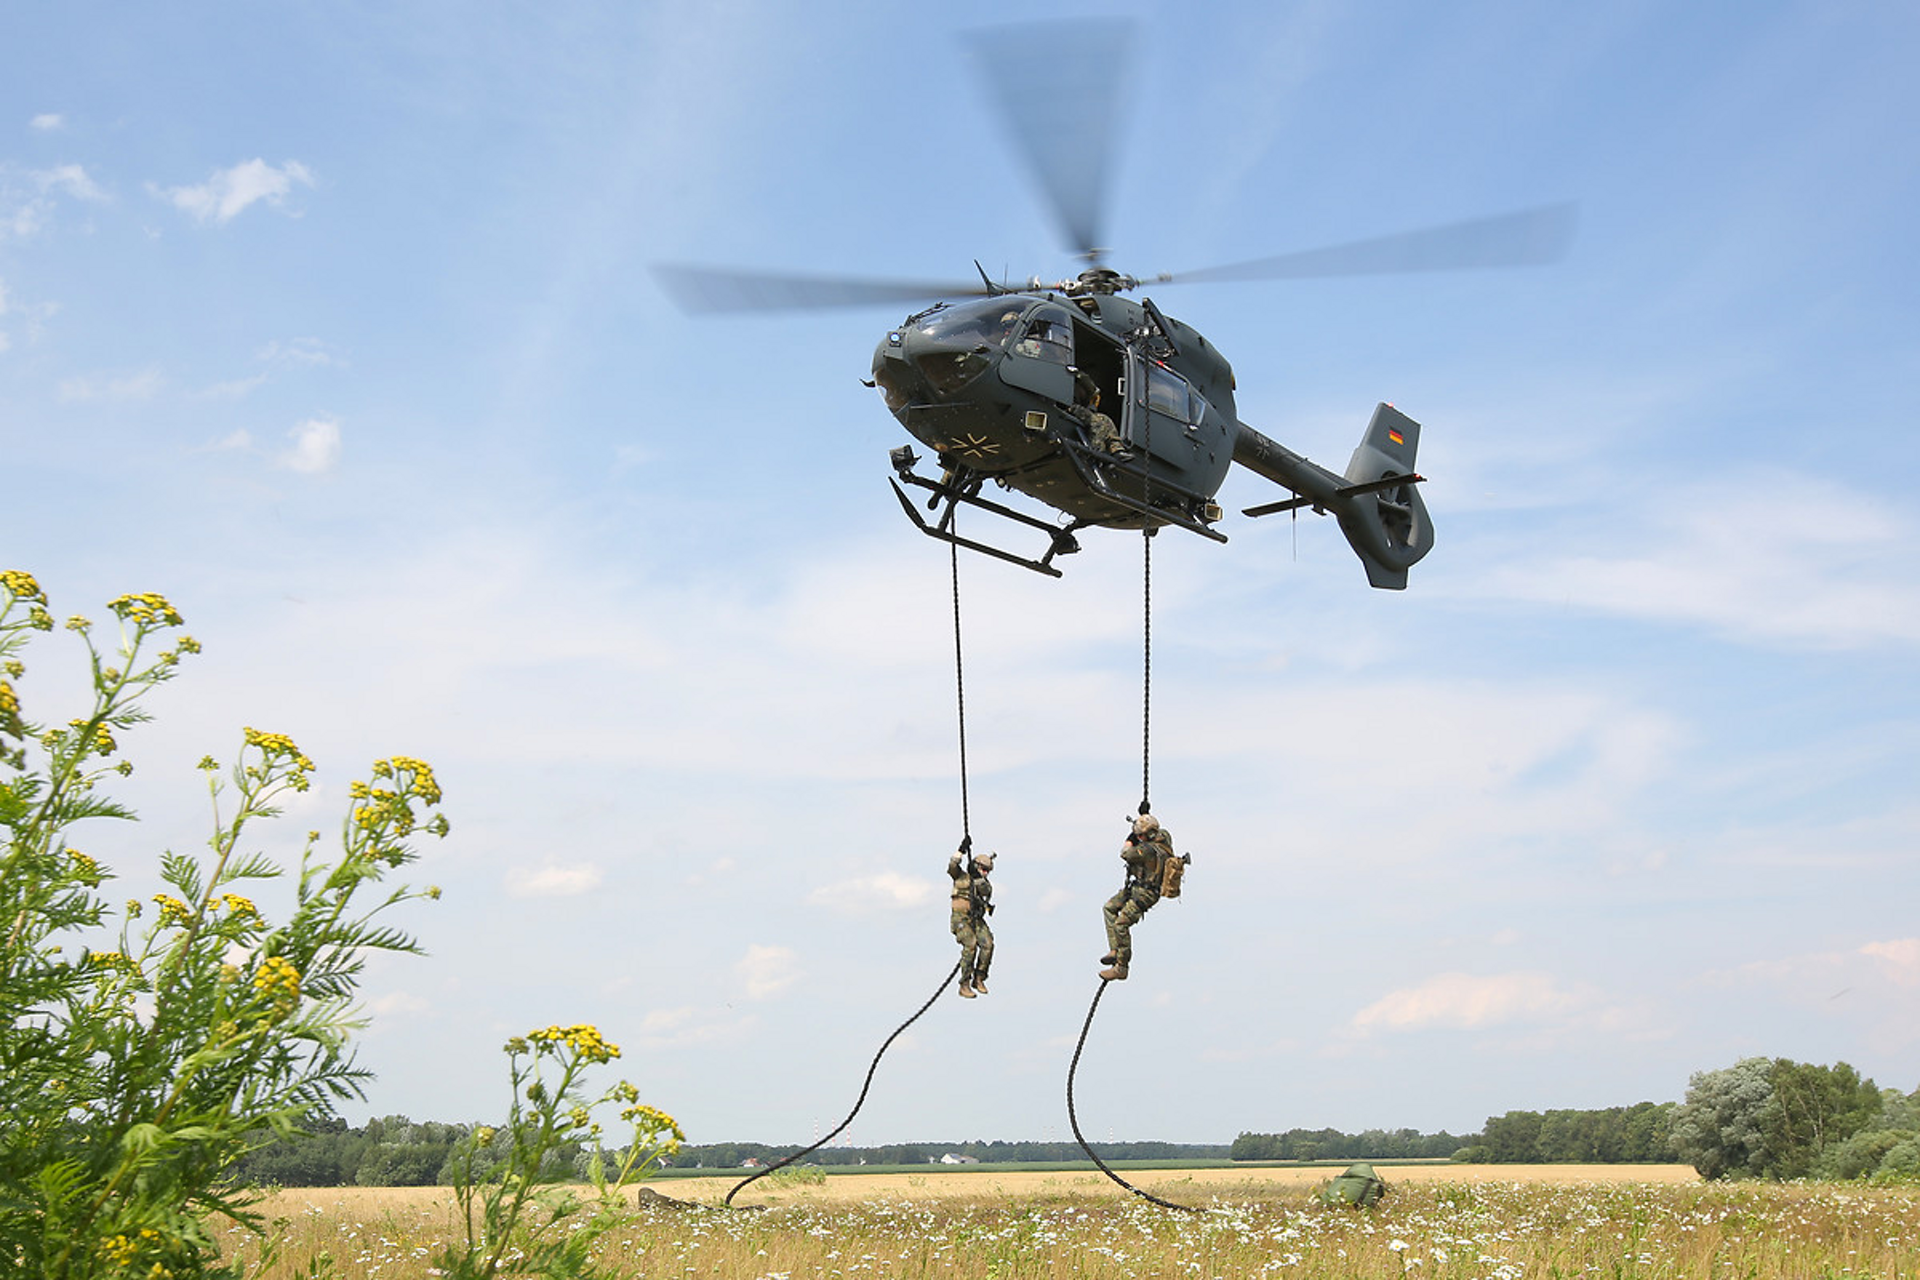 Military personnel rappel from an H145M operated by Germany.